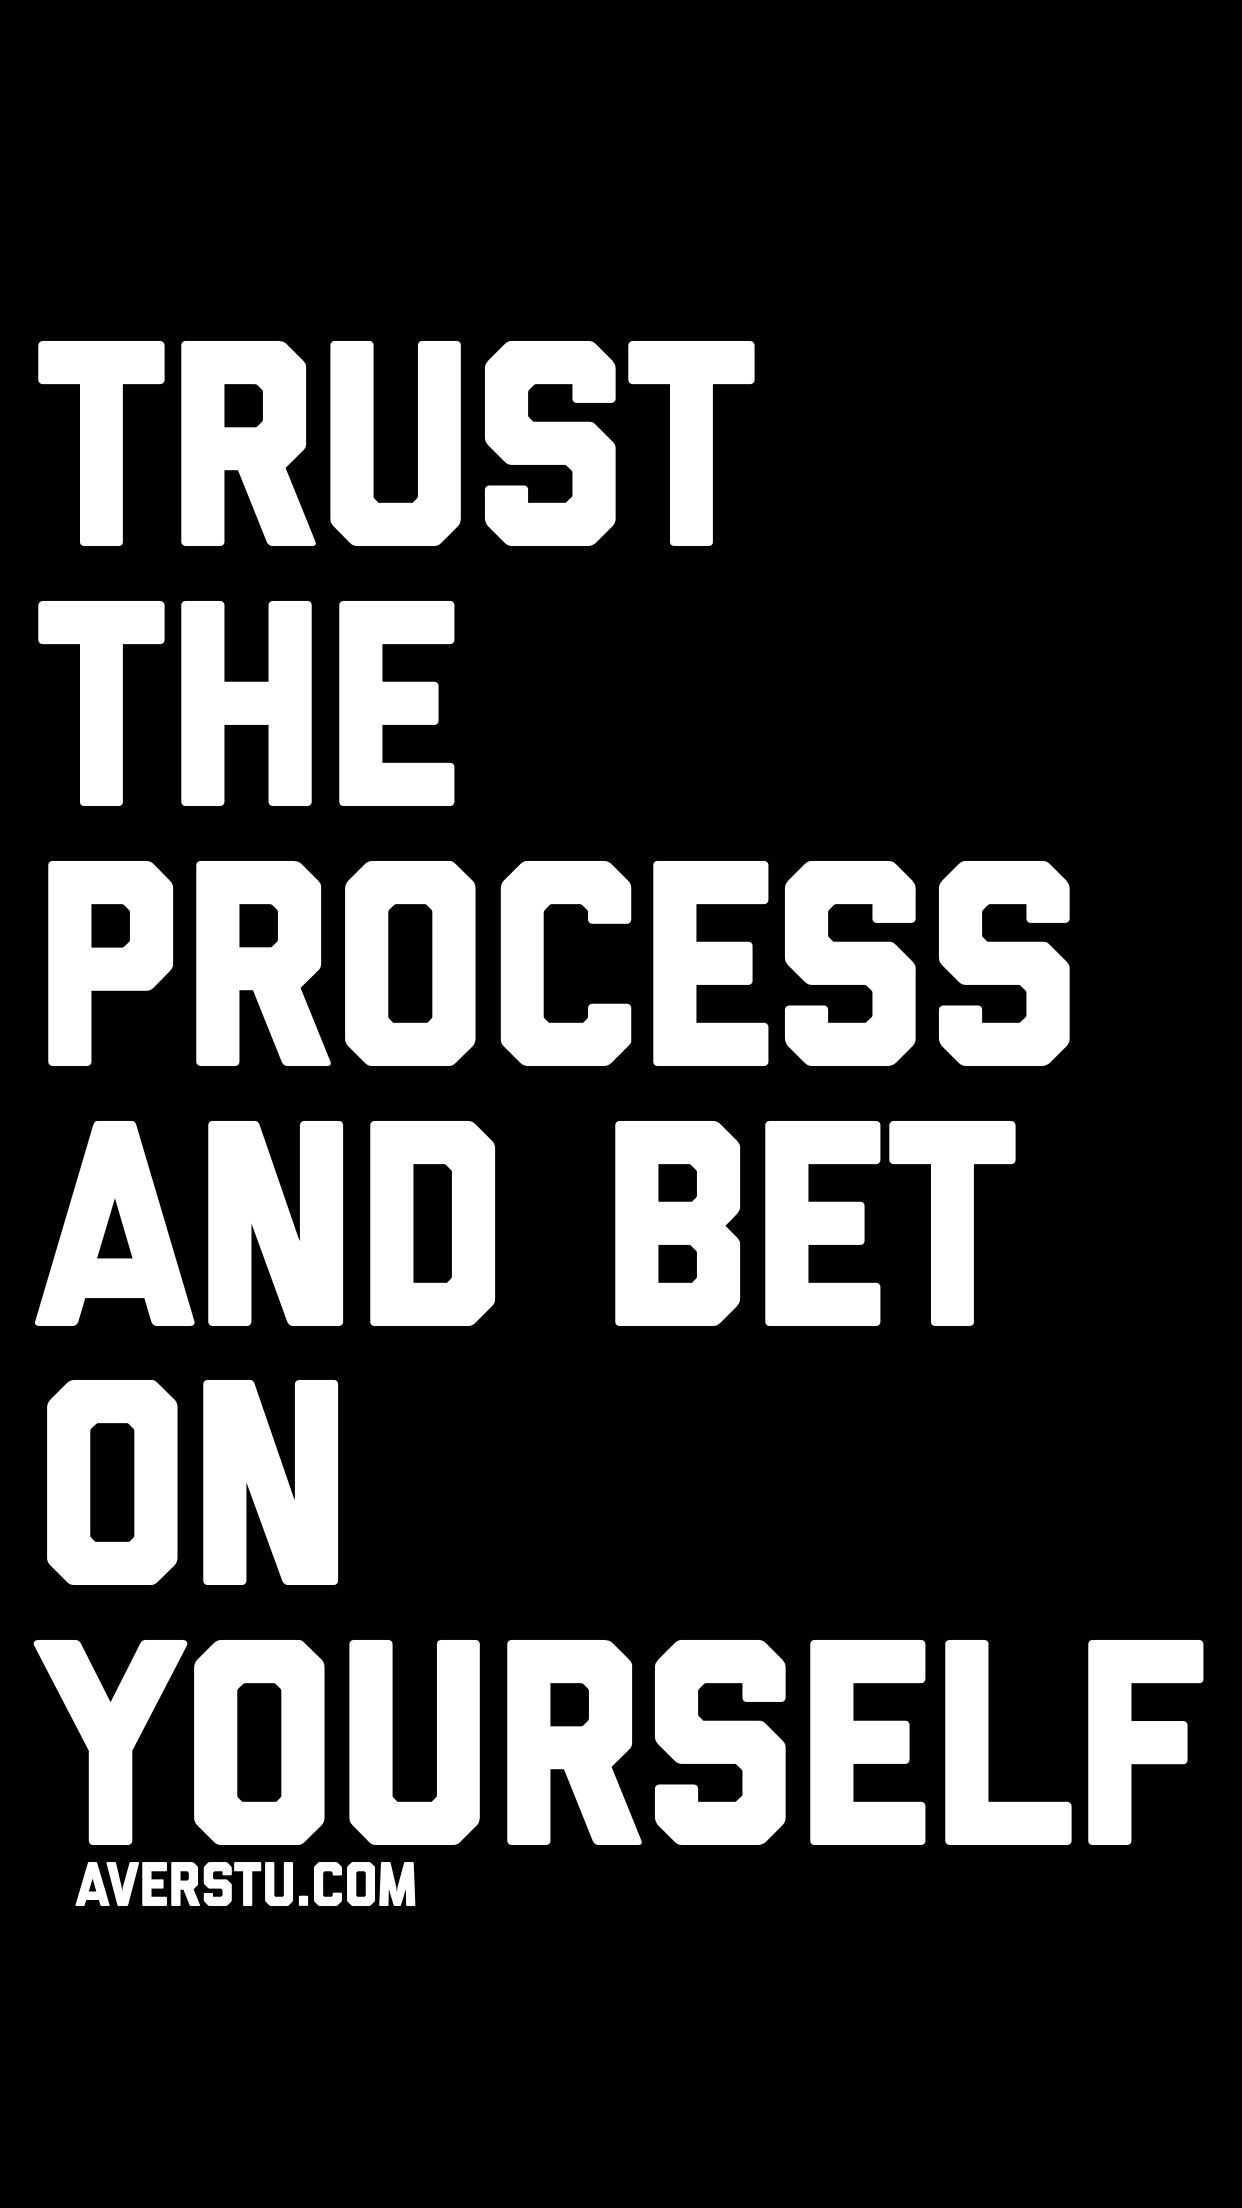 Bet on me quote panbet betting shops essex